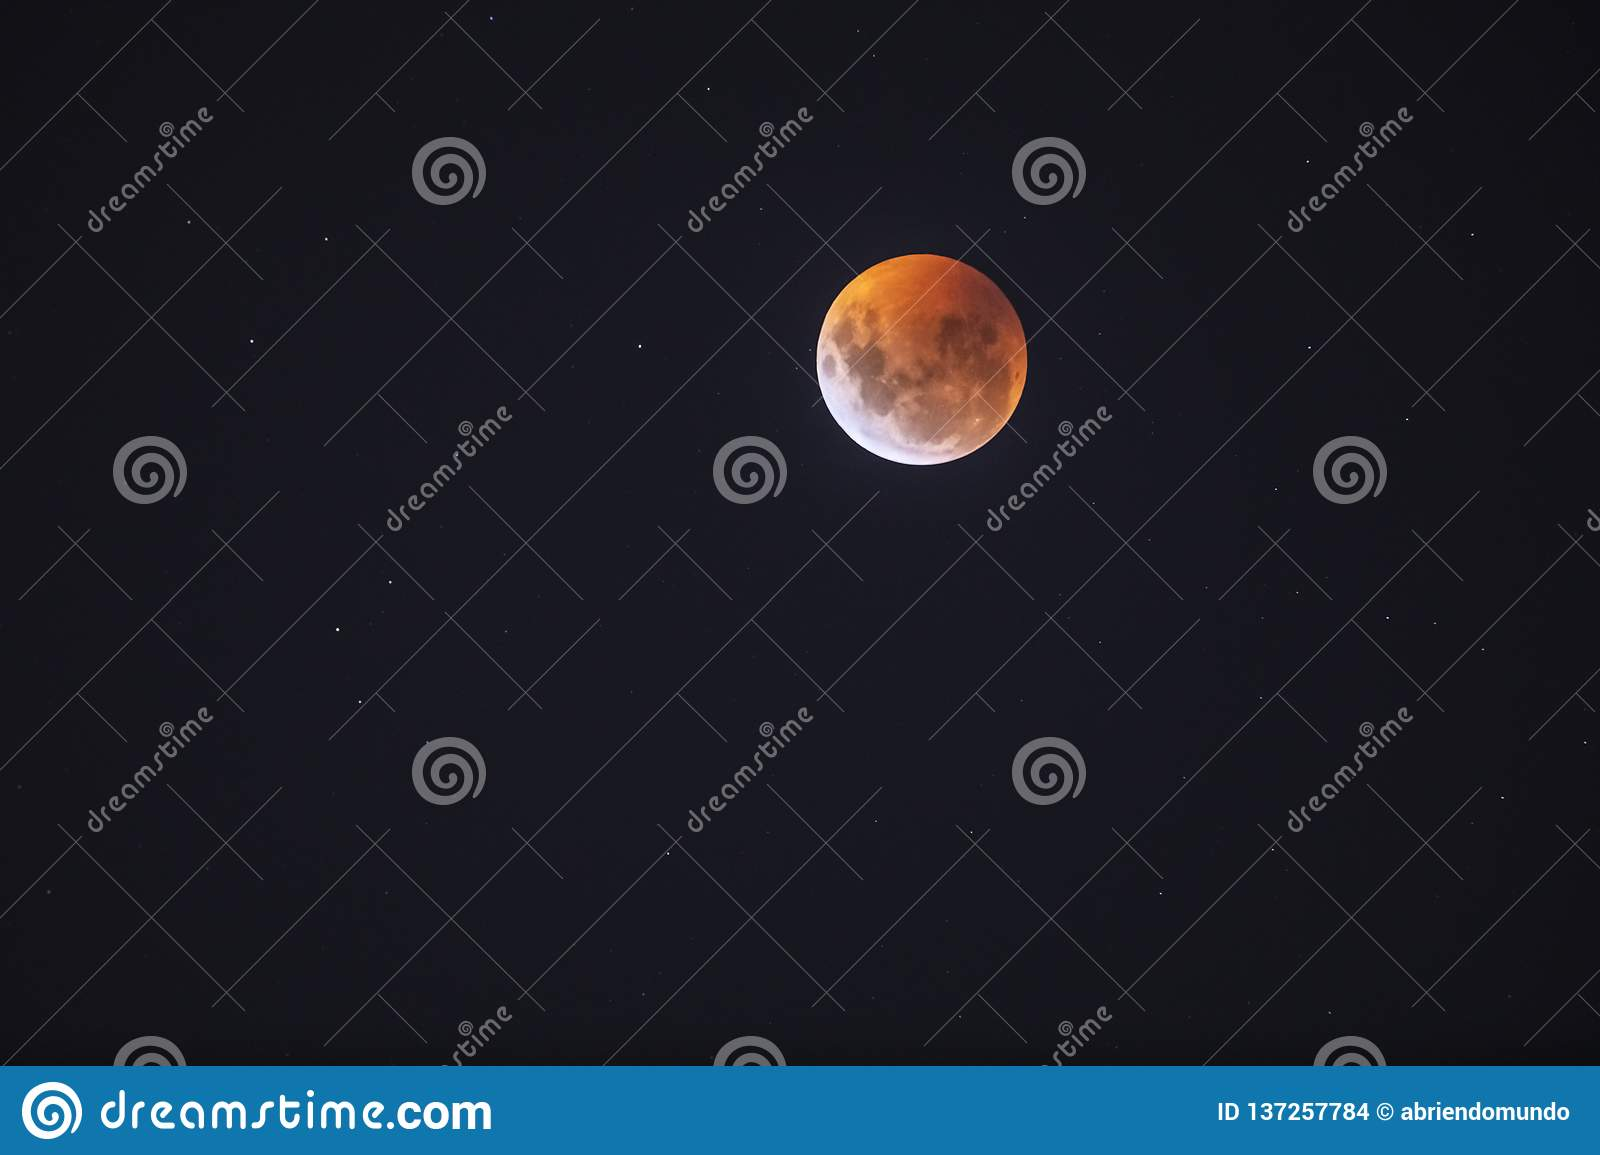 Red full Moon eclipse from Santiago de Chile city, a view from the southern hemisphere of this amazing astronomical event of the E